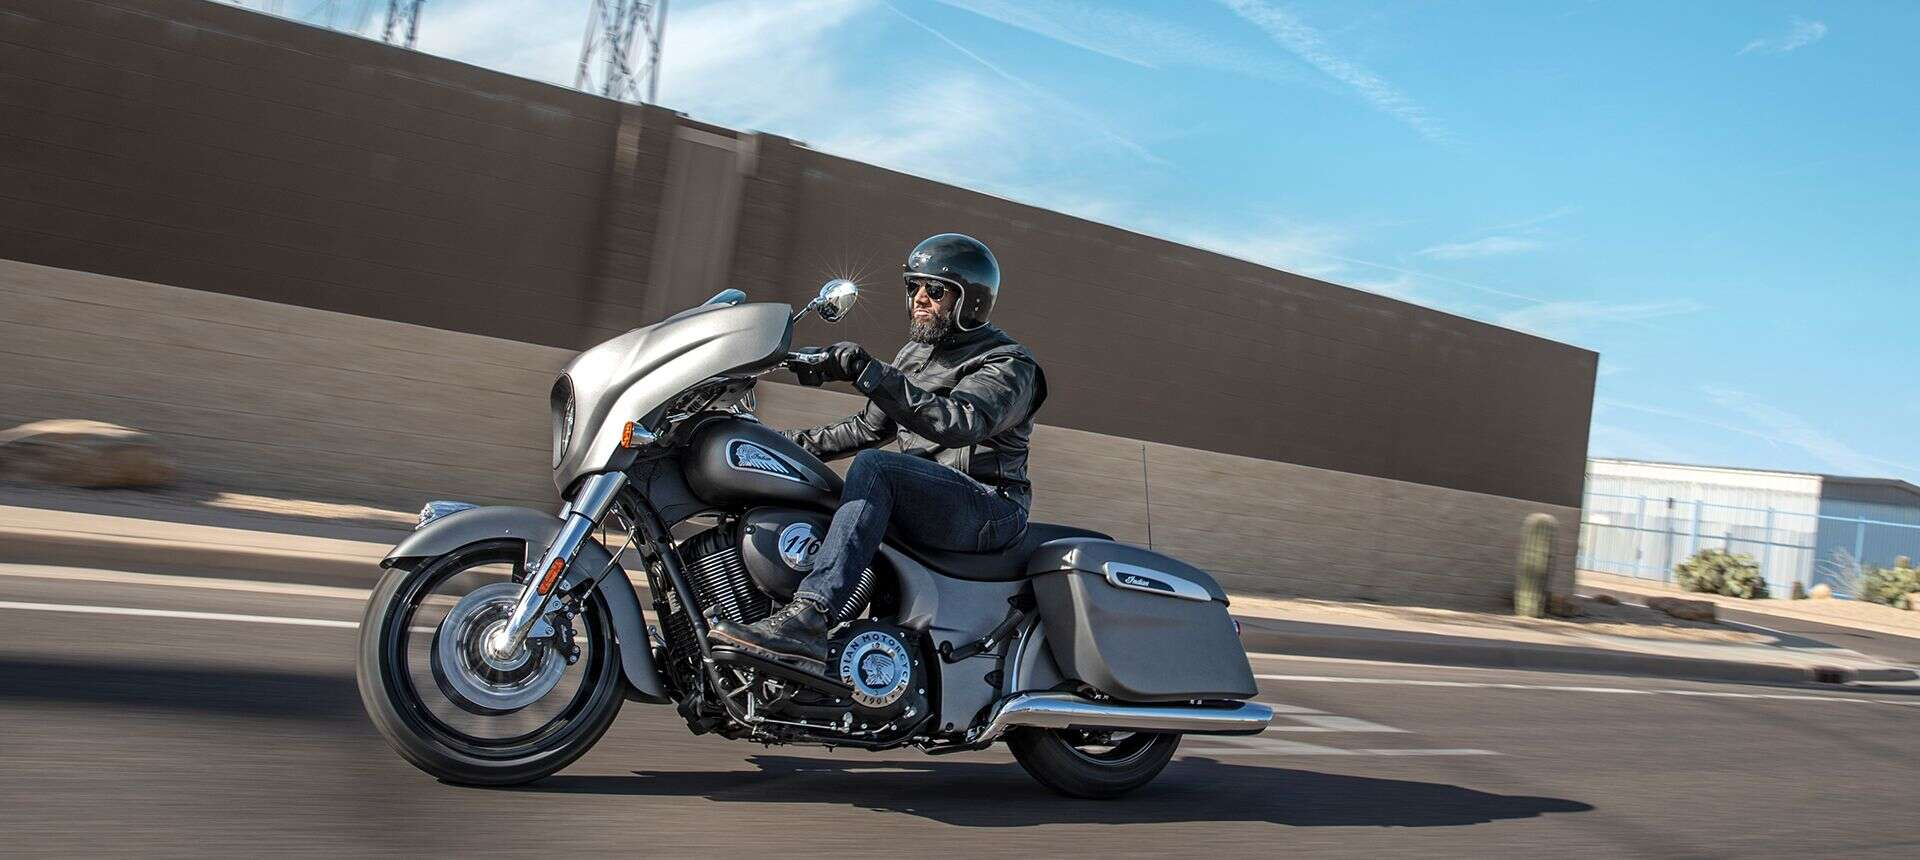 2020 Indian Chieftain